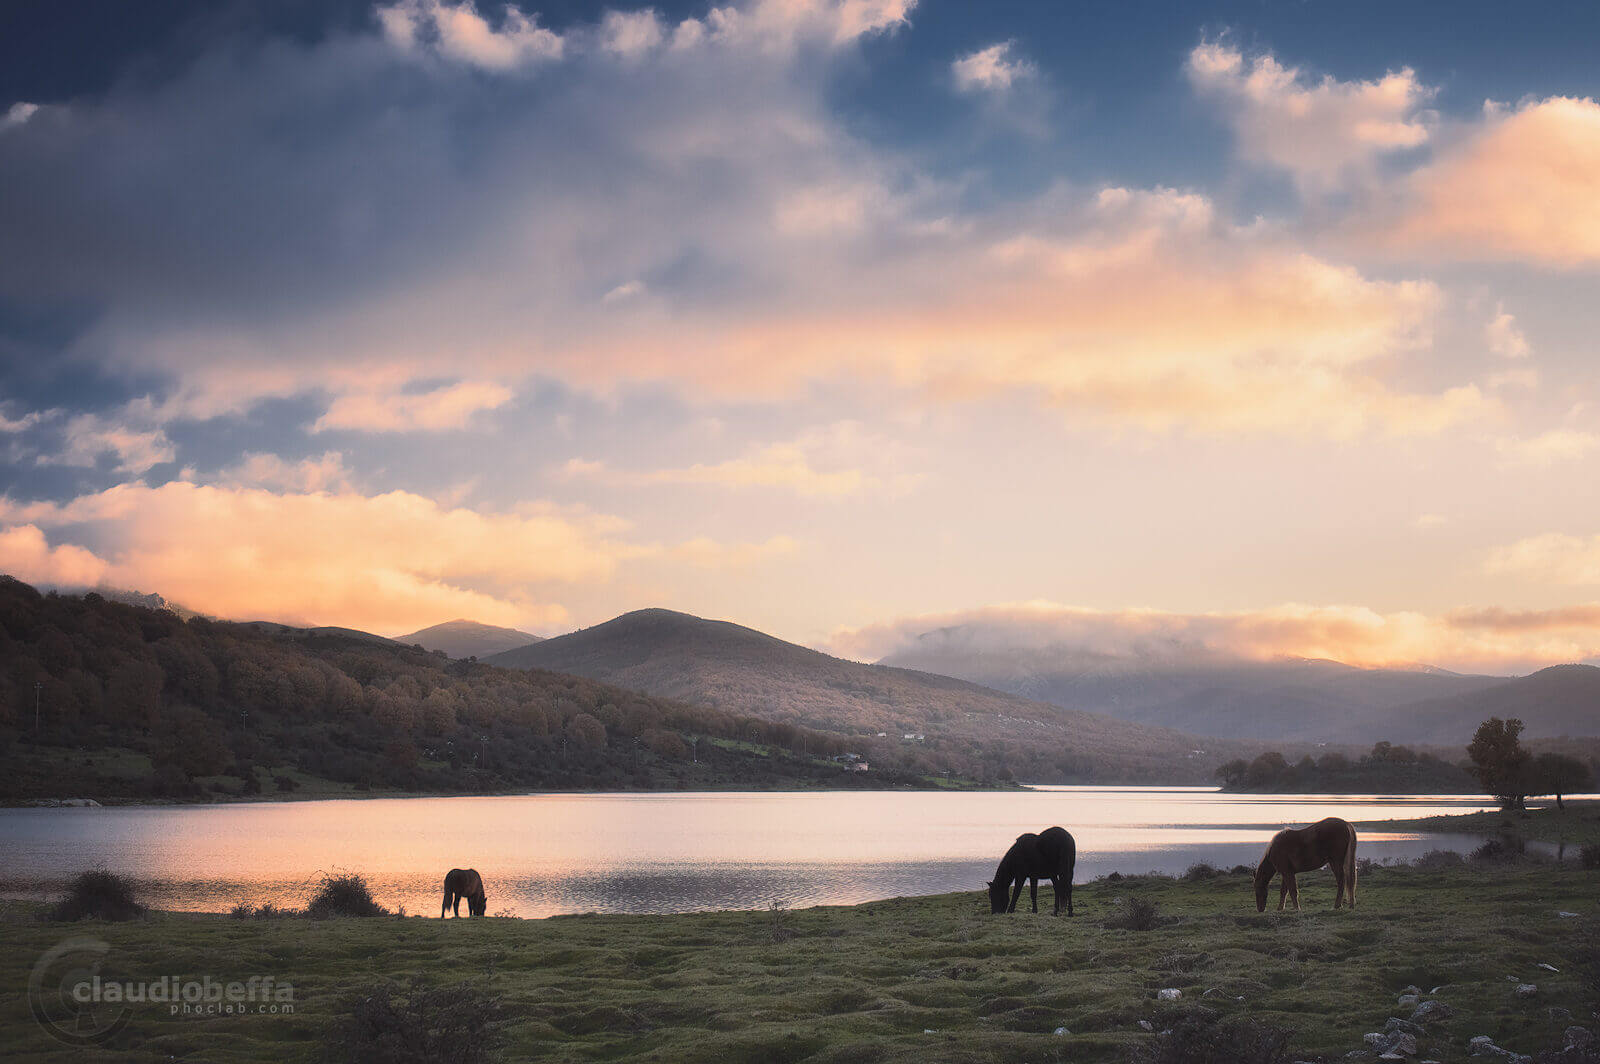 Tranquility, Sunset, Sardinia, Italy, Lake, Sky, Clouds, Horses, Grass, Mountains, Reflections, Landscape